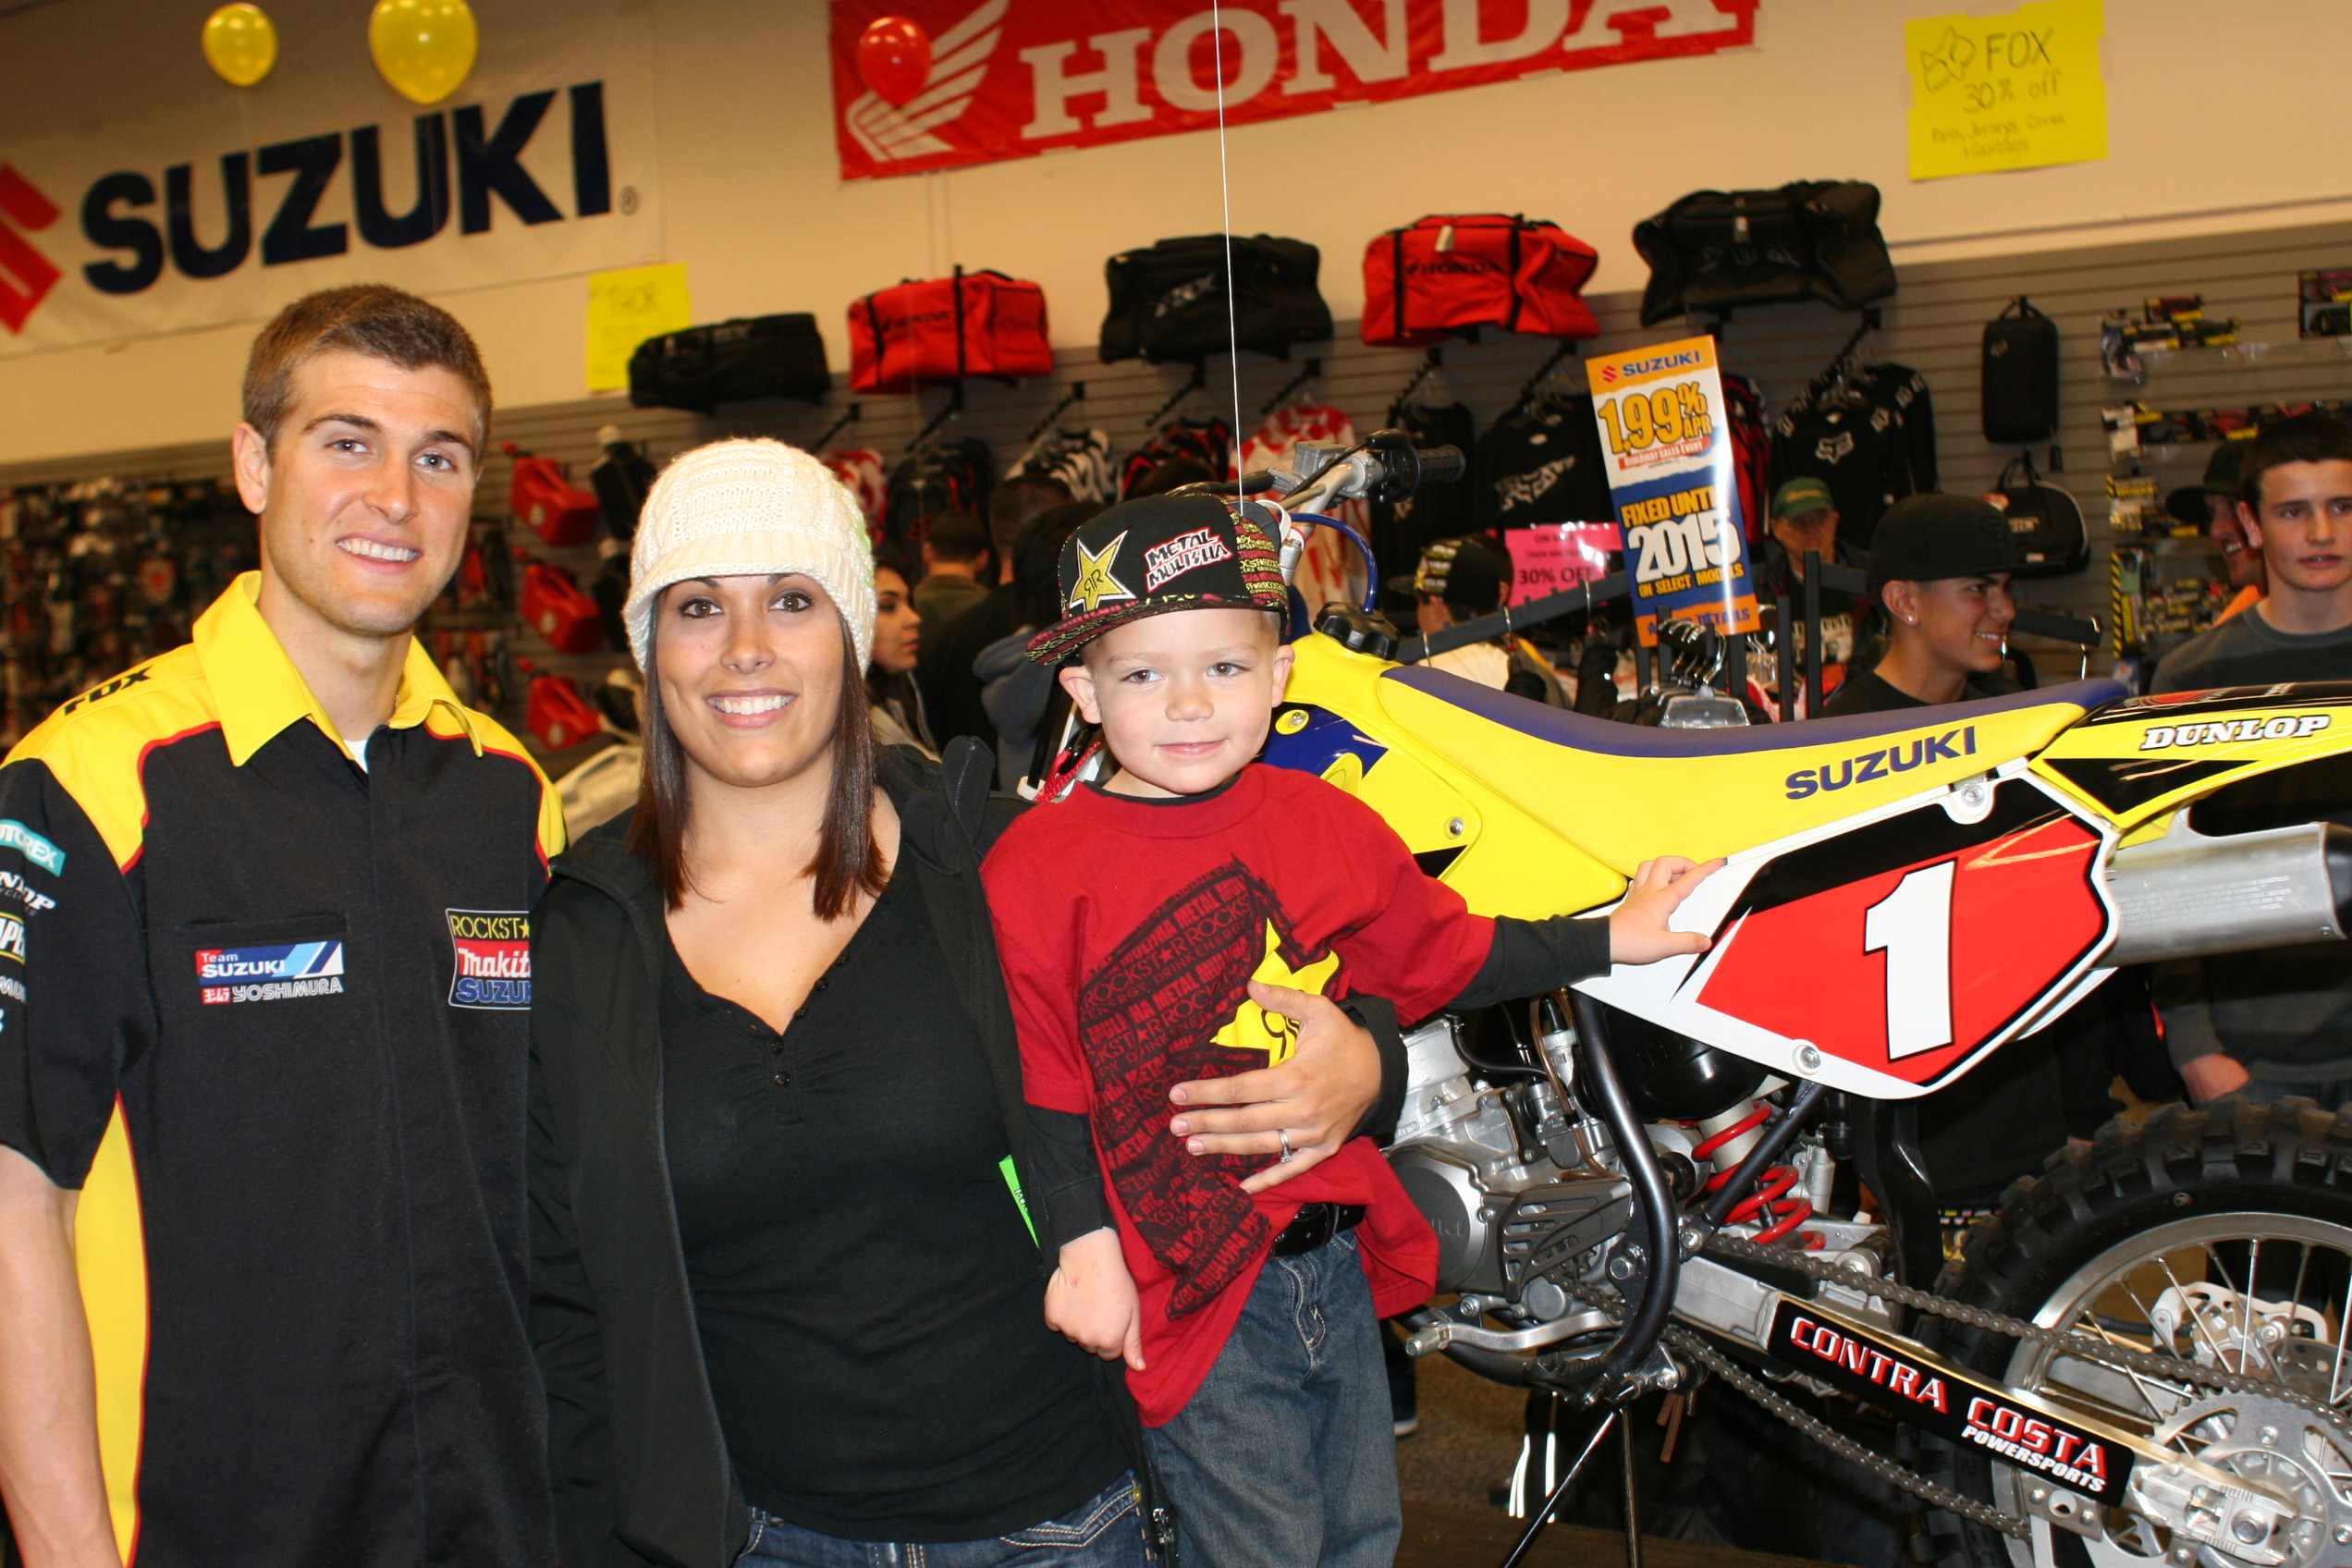 Family photo of the athlete, married to Lindsay Dungey, famous for AMA Supercross and Motocross championships.